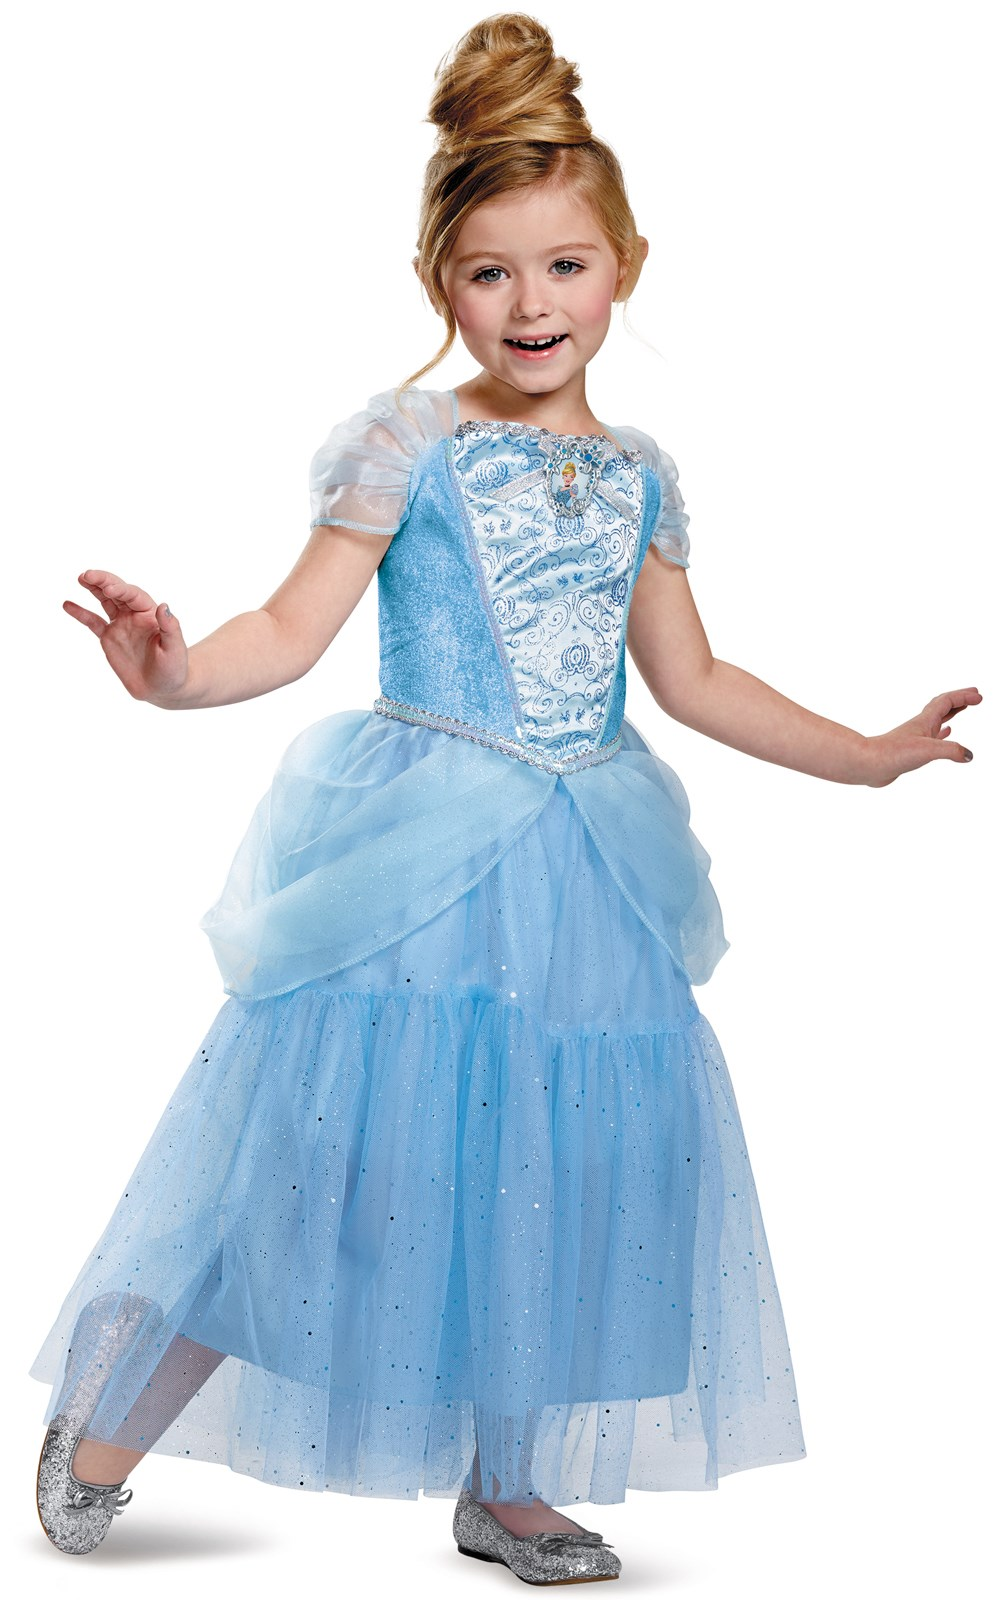 Disney Cinderella Deluxe Sparkle Toddler / Child Costume 3T-4T